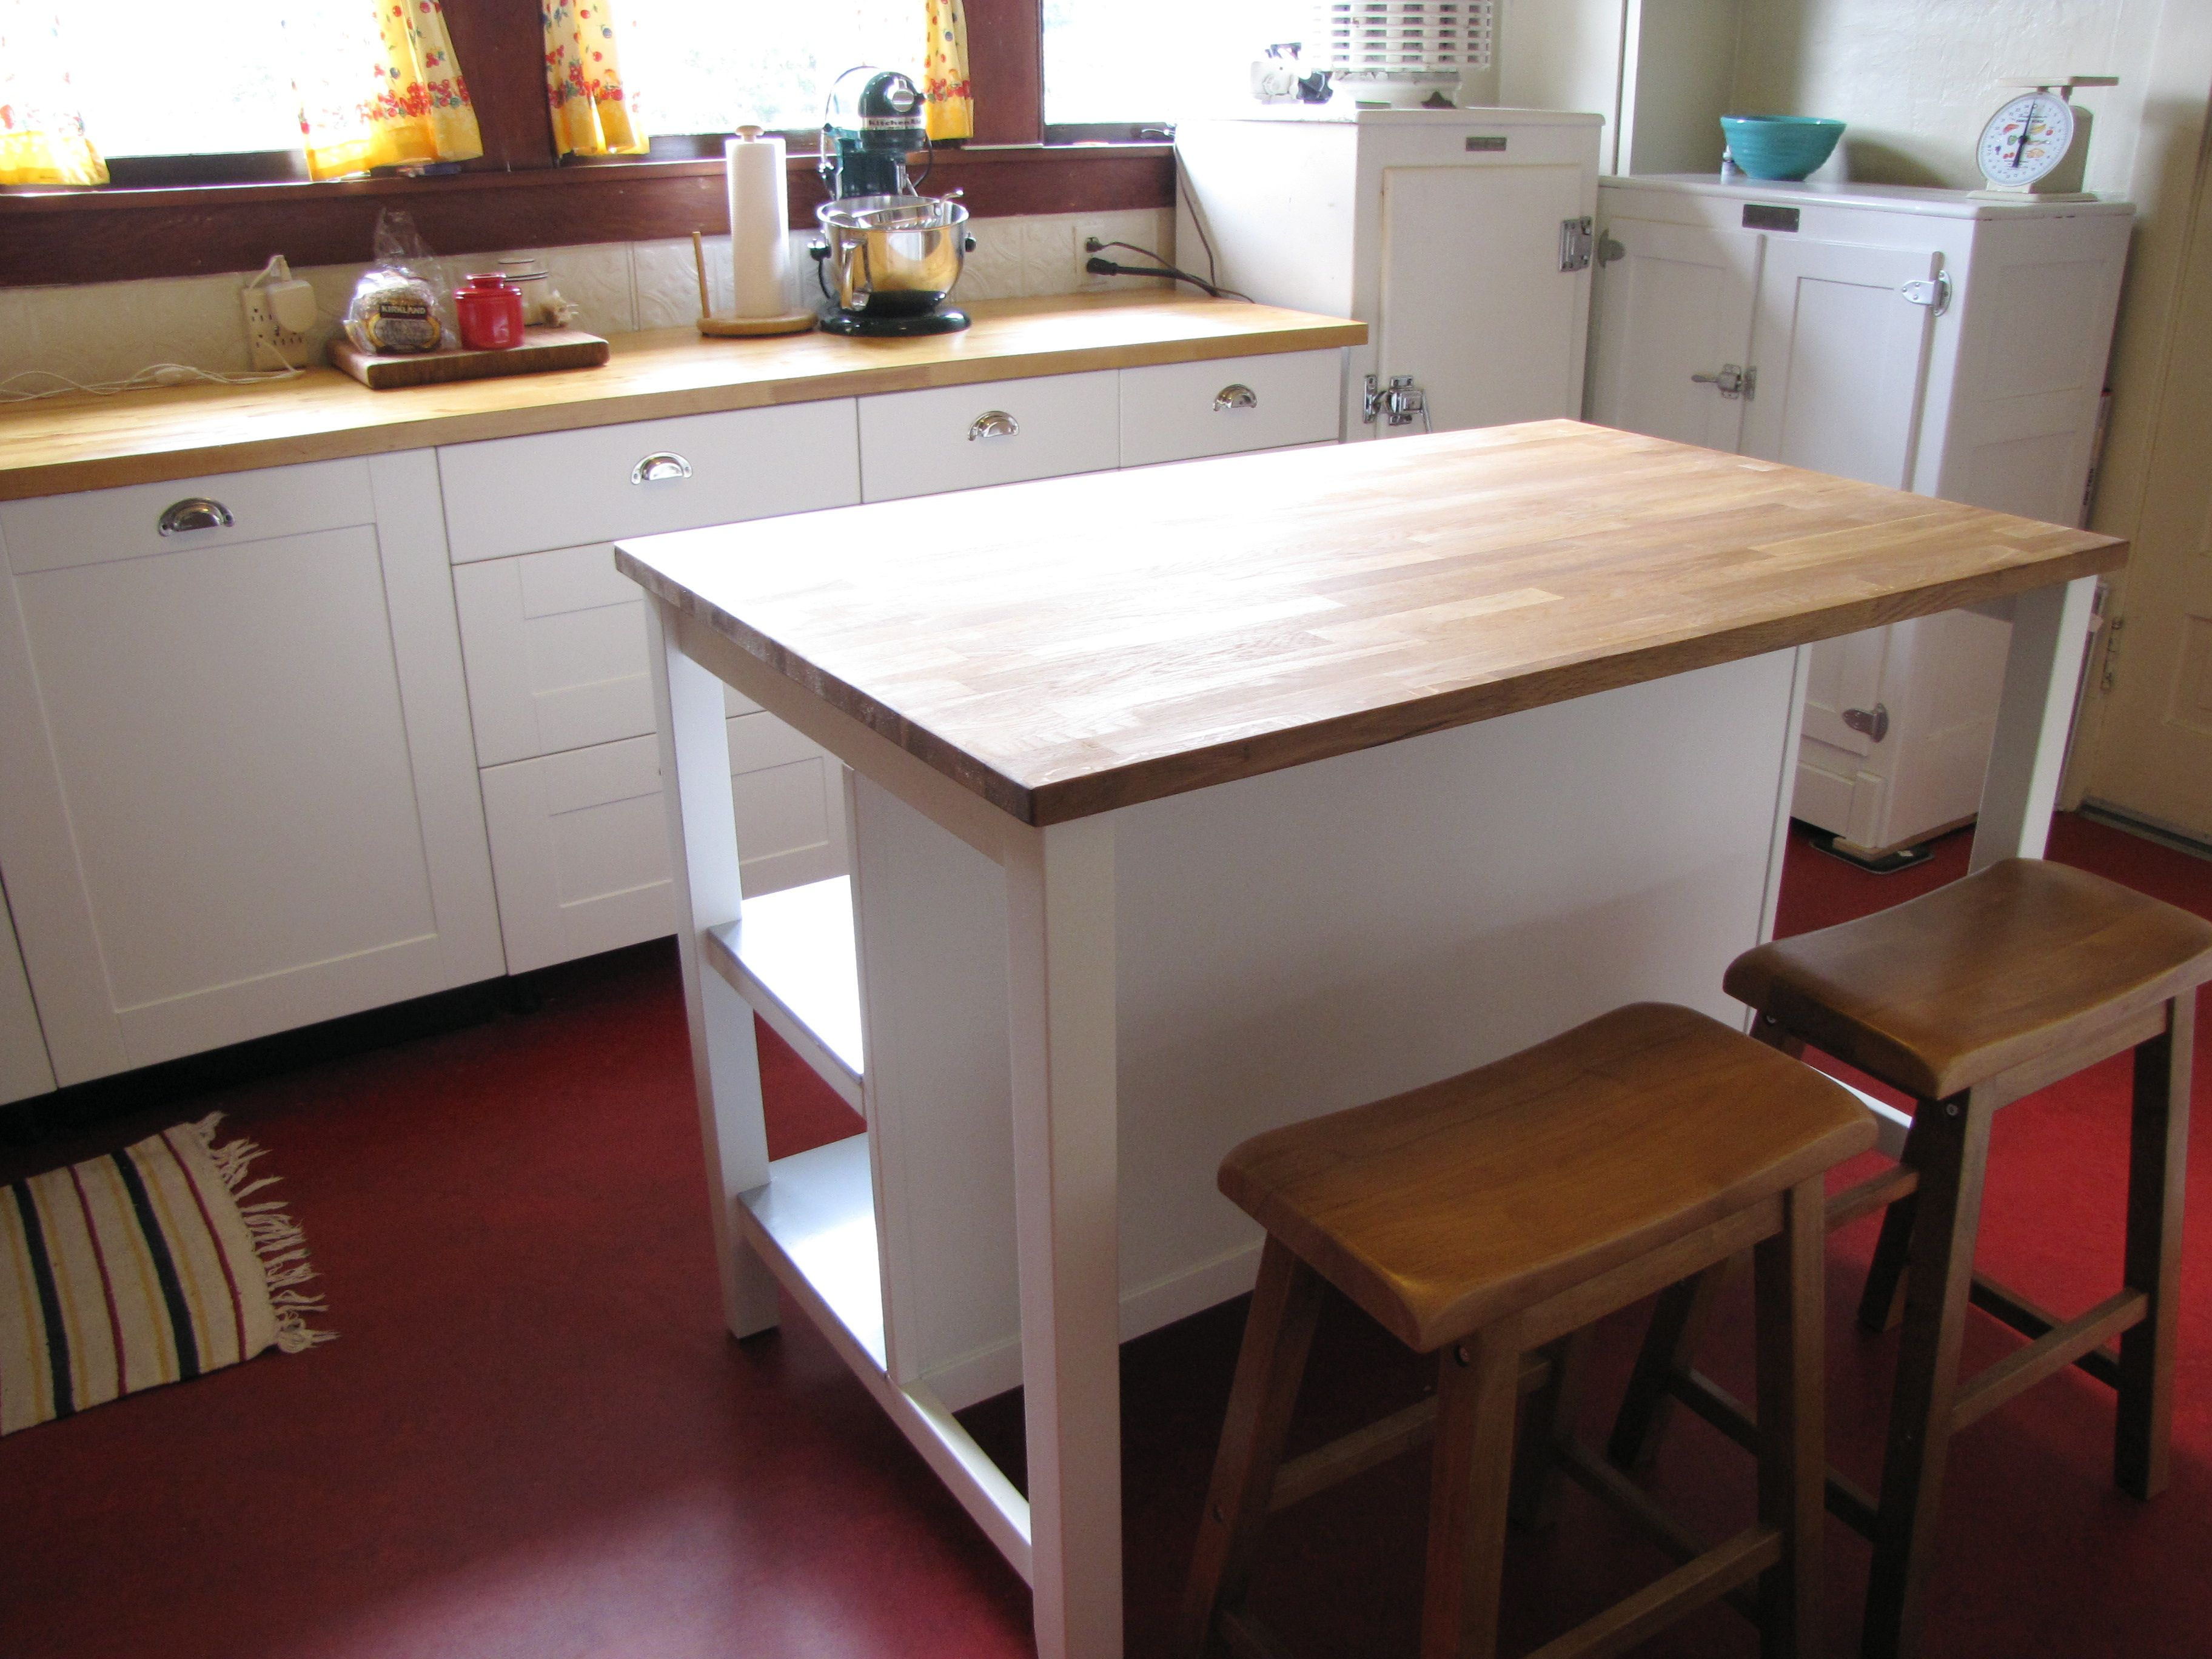 Ikea Kitchen Design Blog Small Kitchen Island Ideas Blogs Stenstorp Kitchen